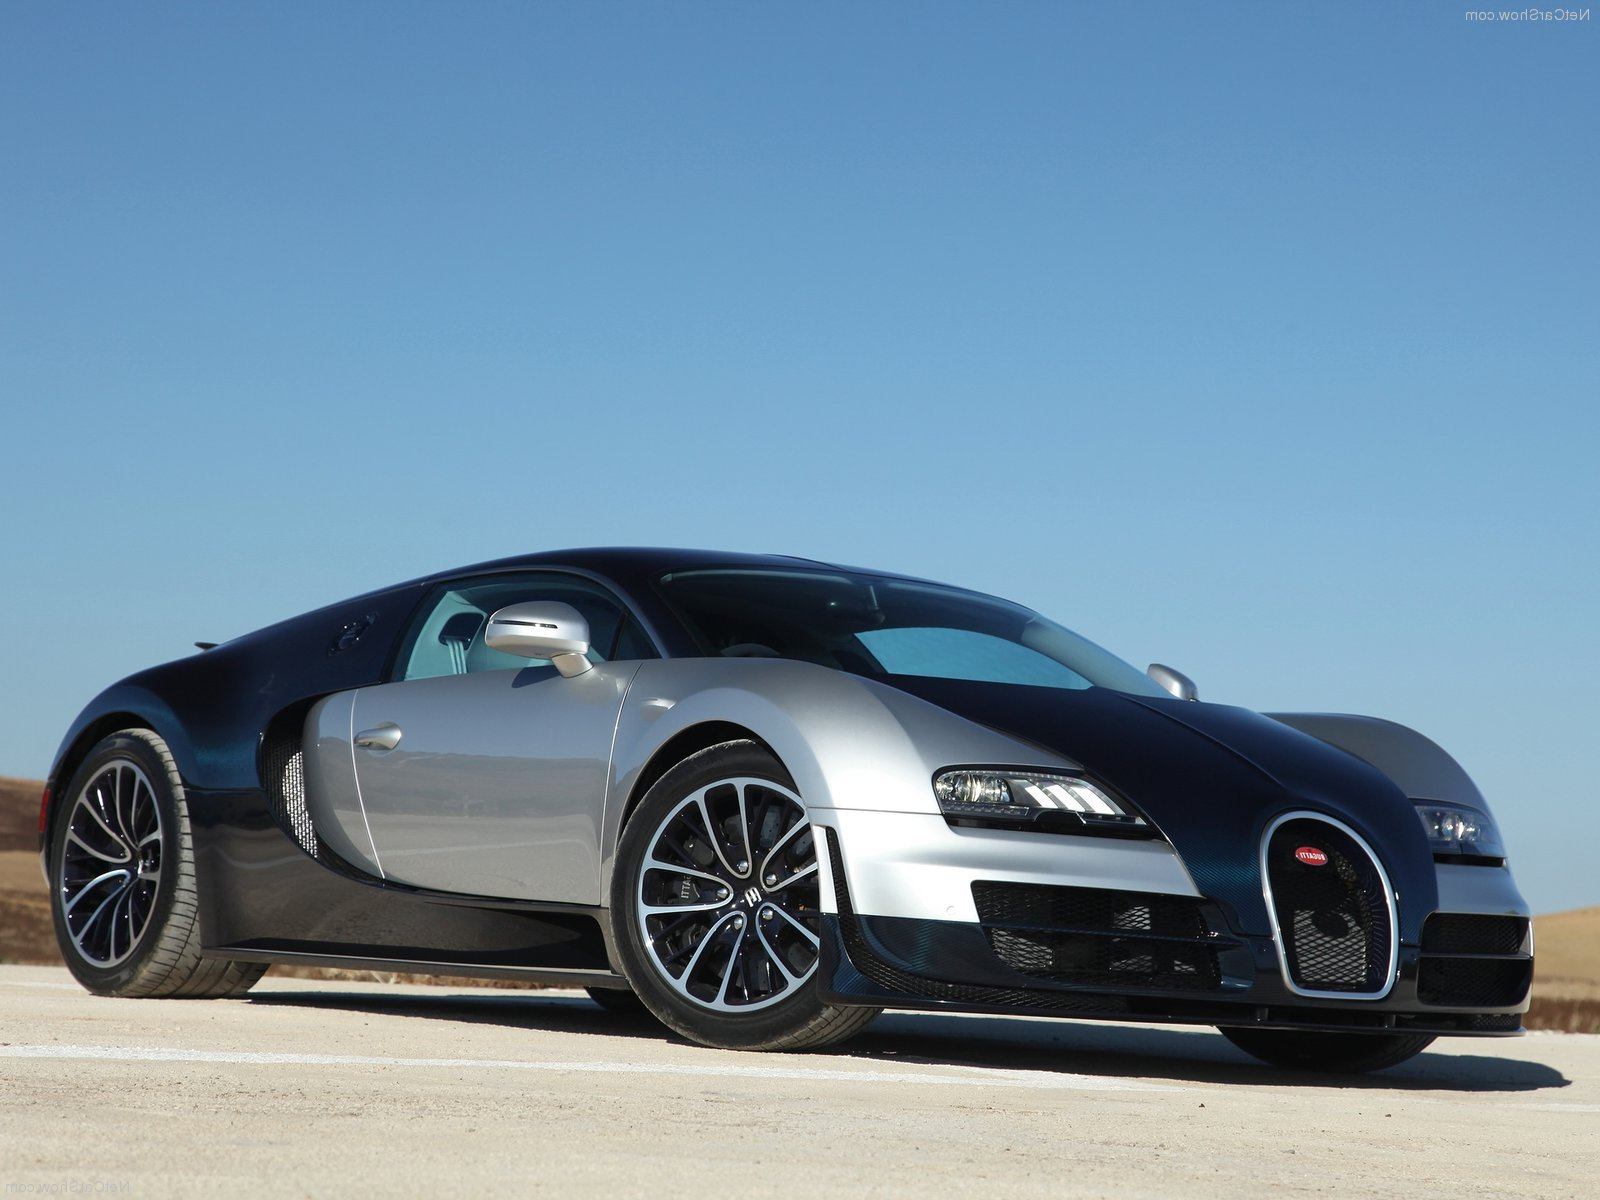 Bugatti Veyron Super Sport Wallpaper 1920x1080: Bugatti Veyron Super Sport Wallpaper